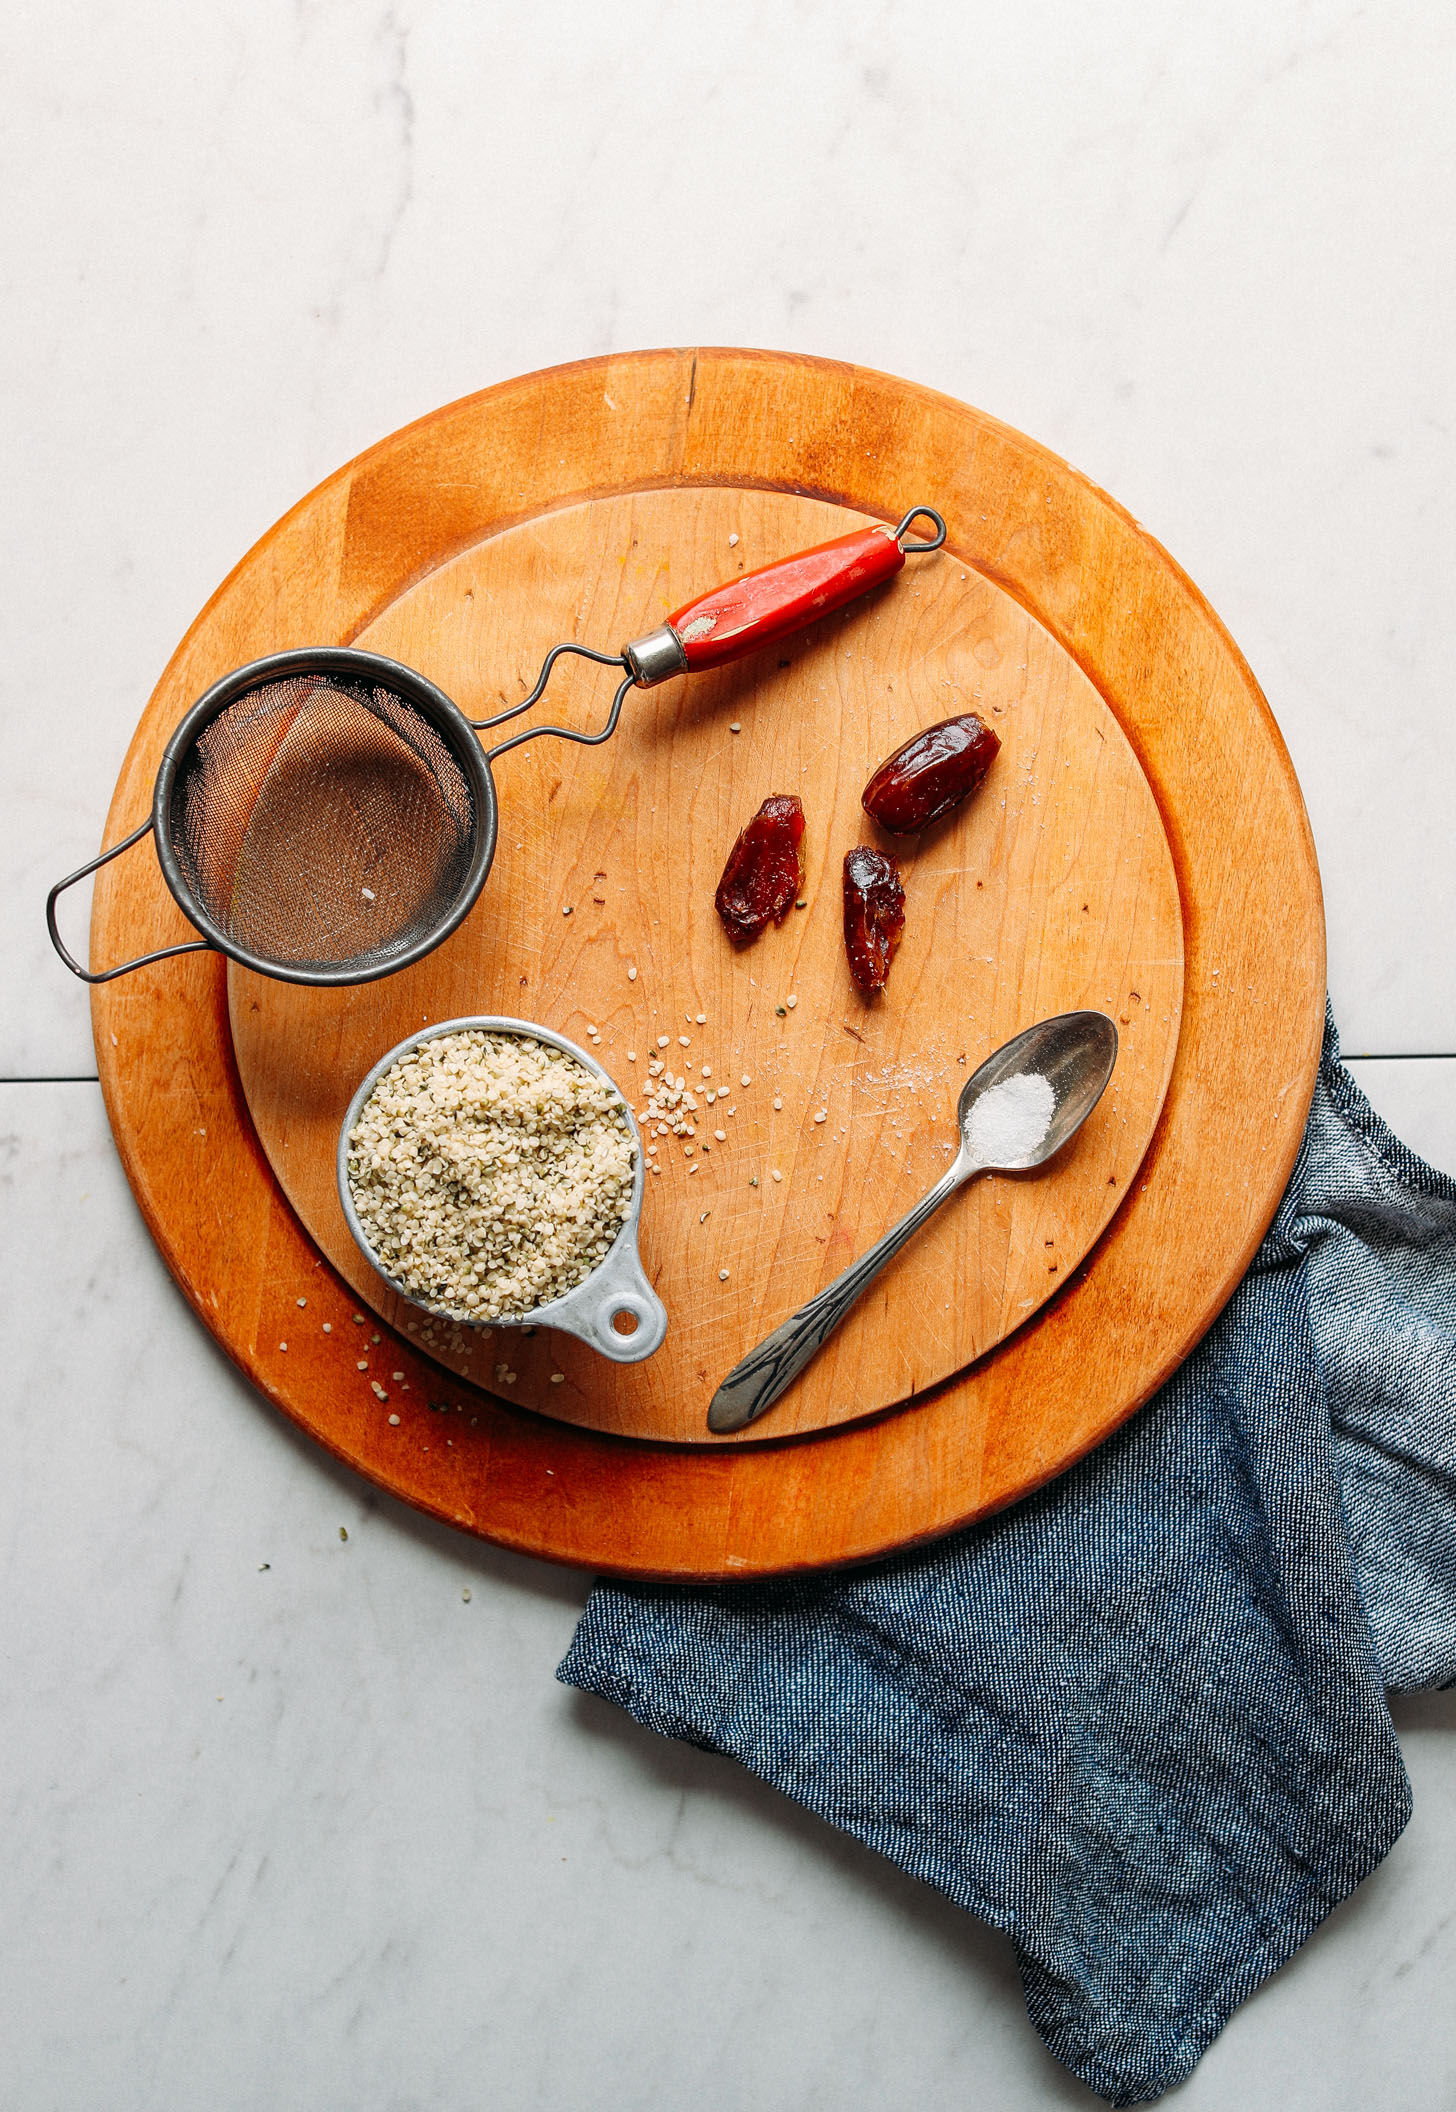 Wood cutting board with ingredients for making homemade Hemp Milk